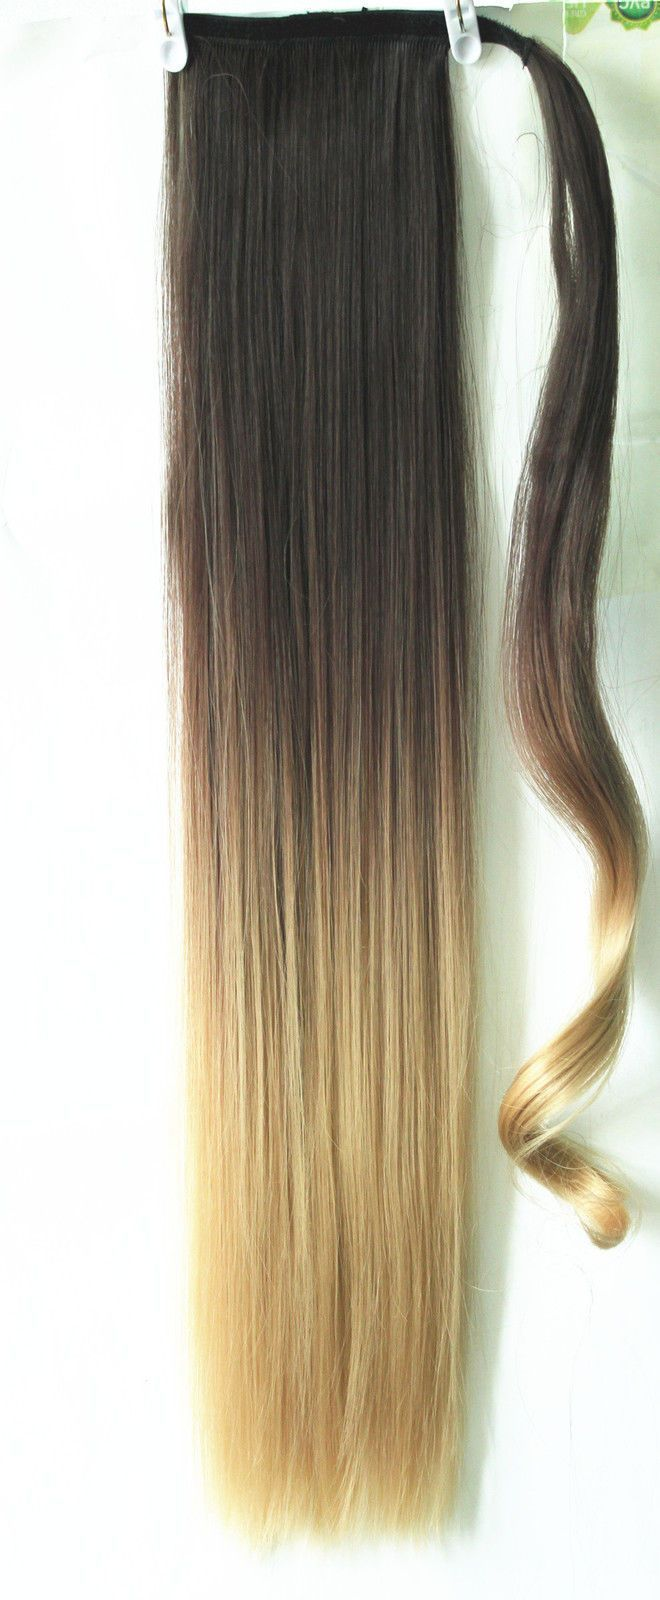 22 Straight Wrap Around Ponytail Clip In Hair Extensions Ombre Dip